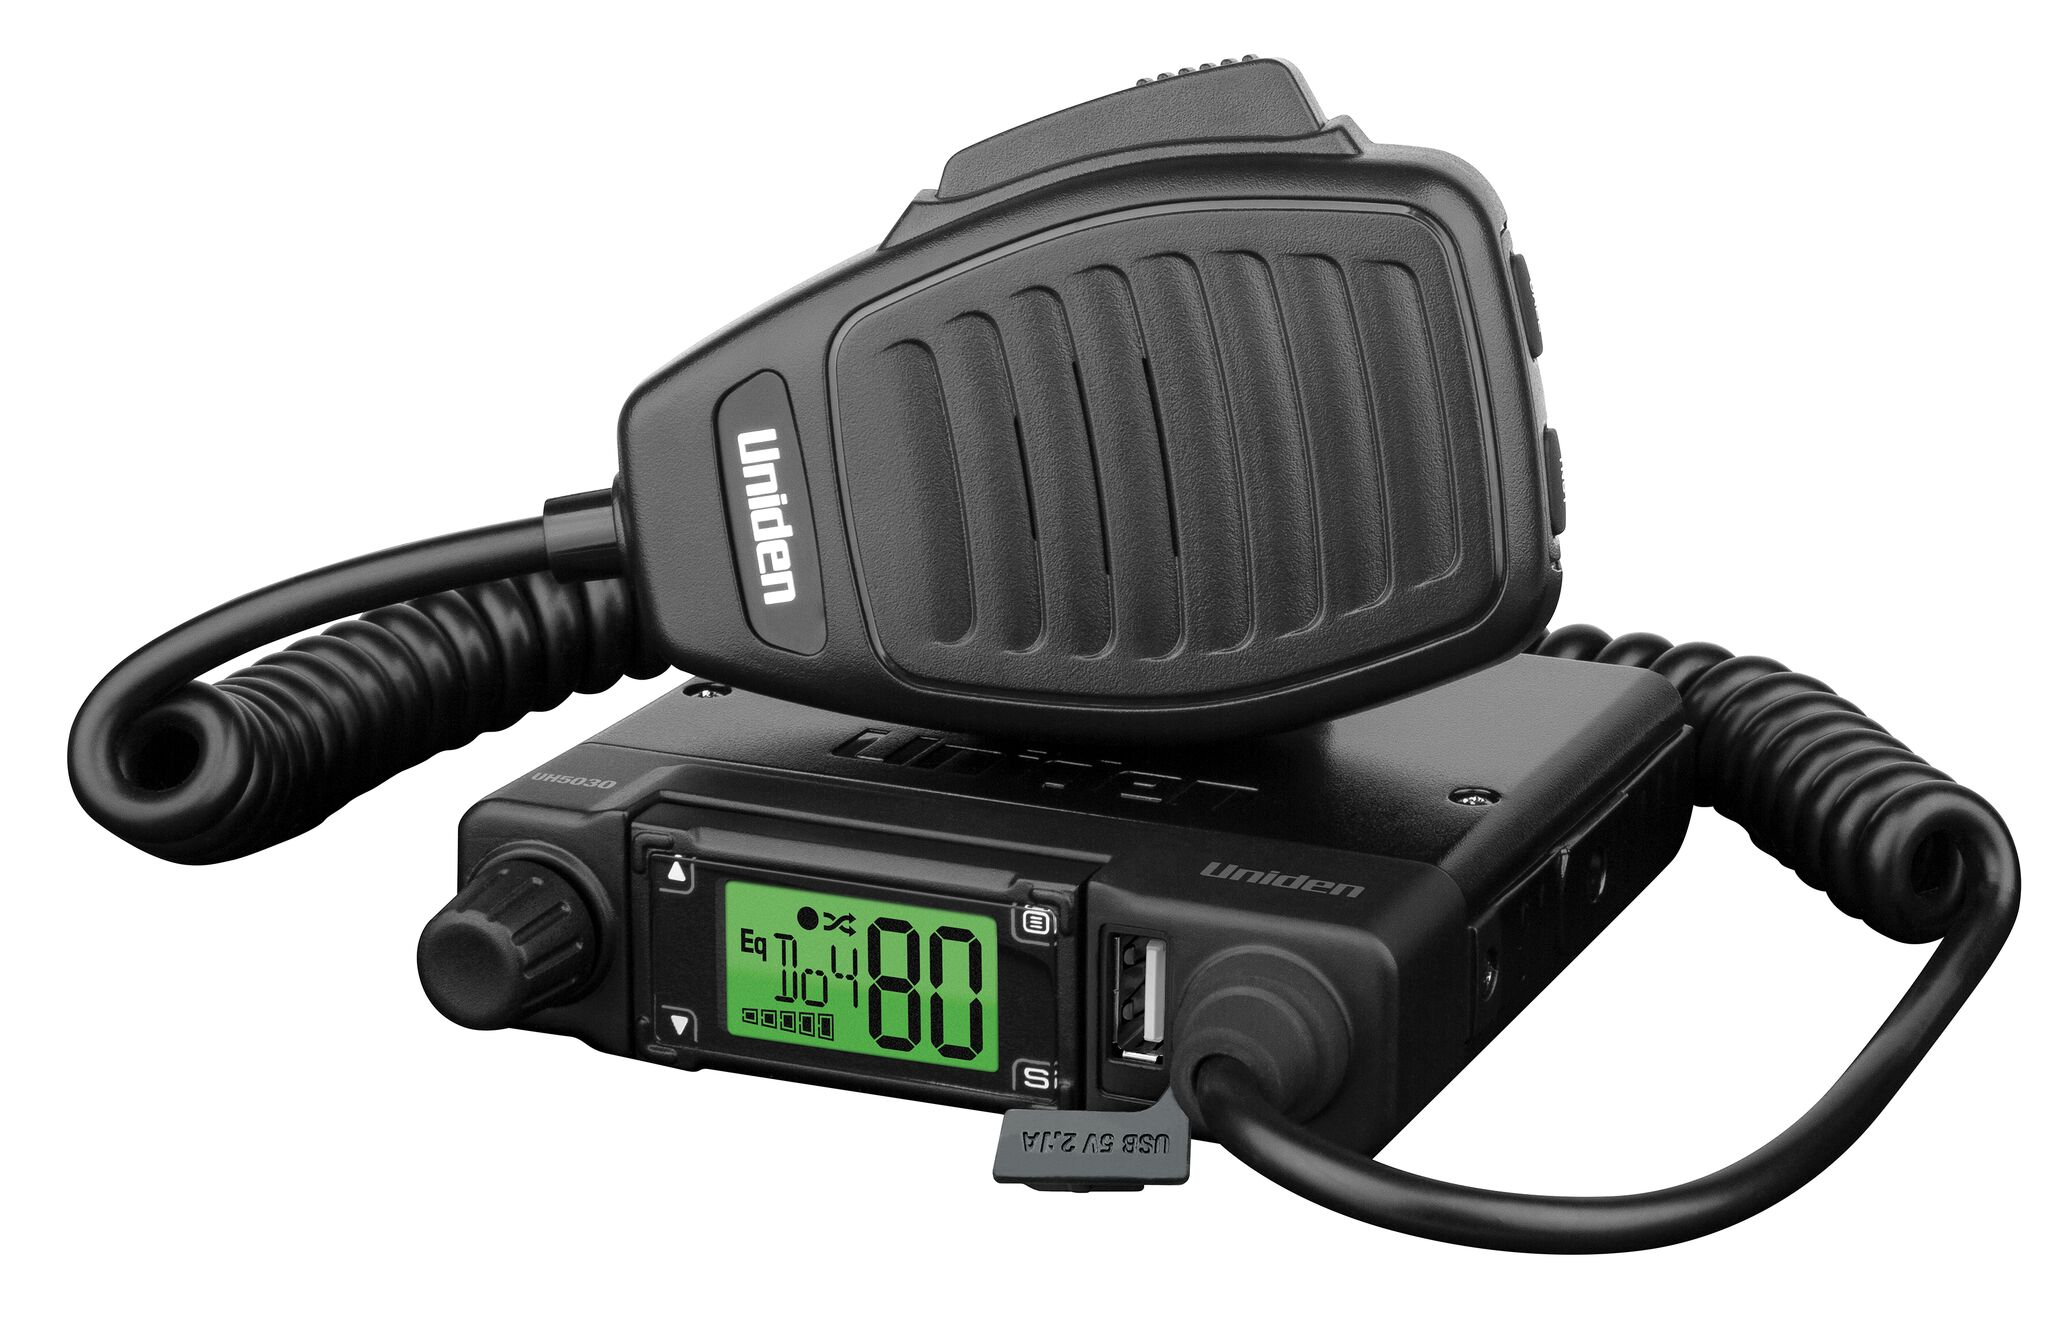 New Product Release: Uniden UH5030 UHF Radio